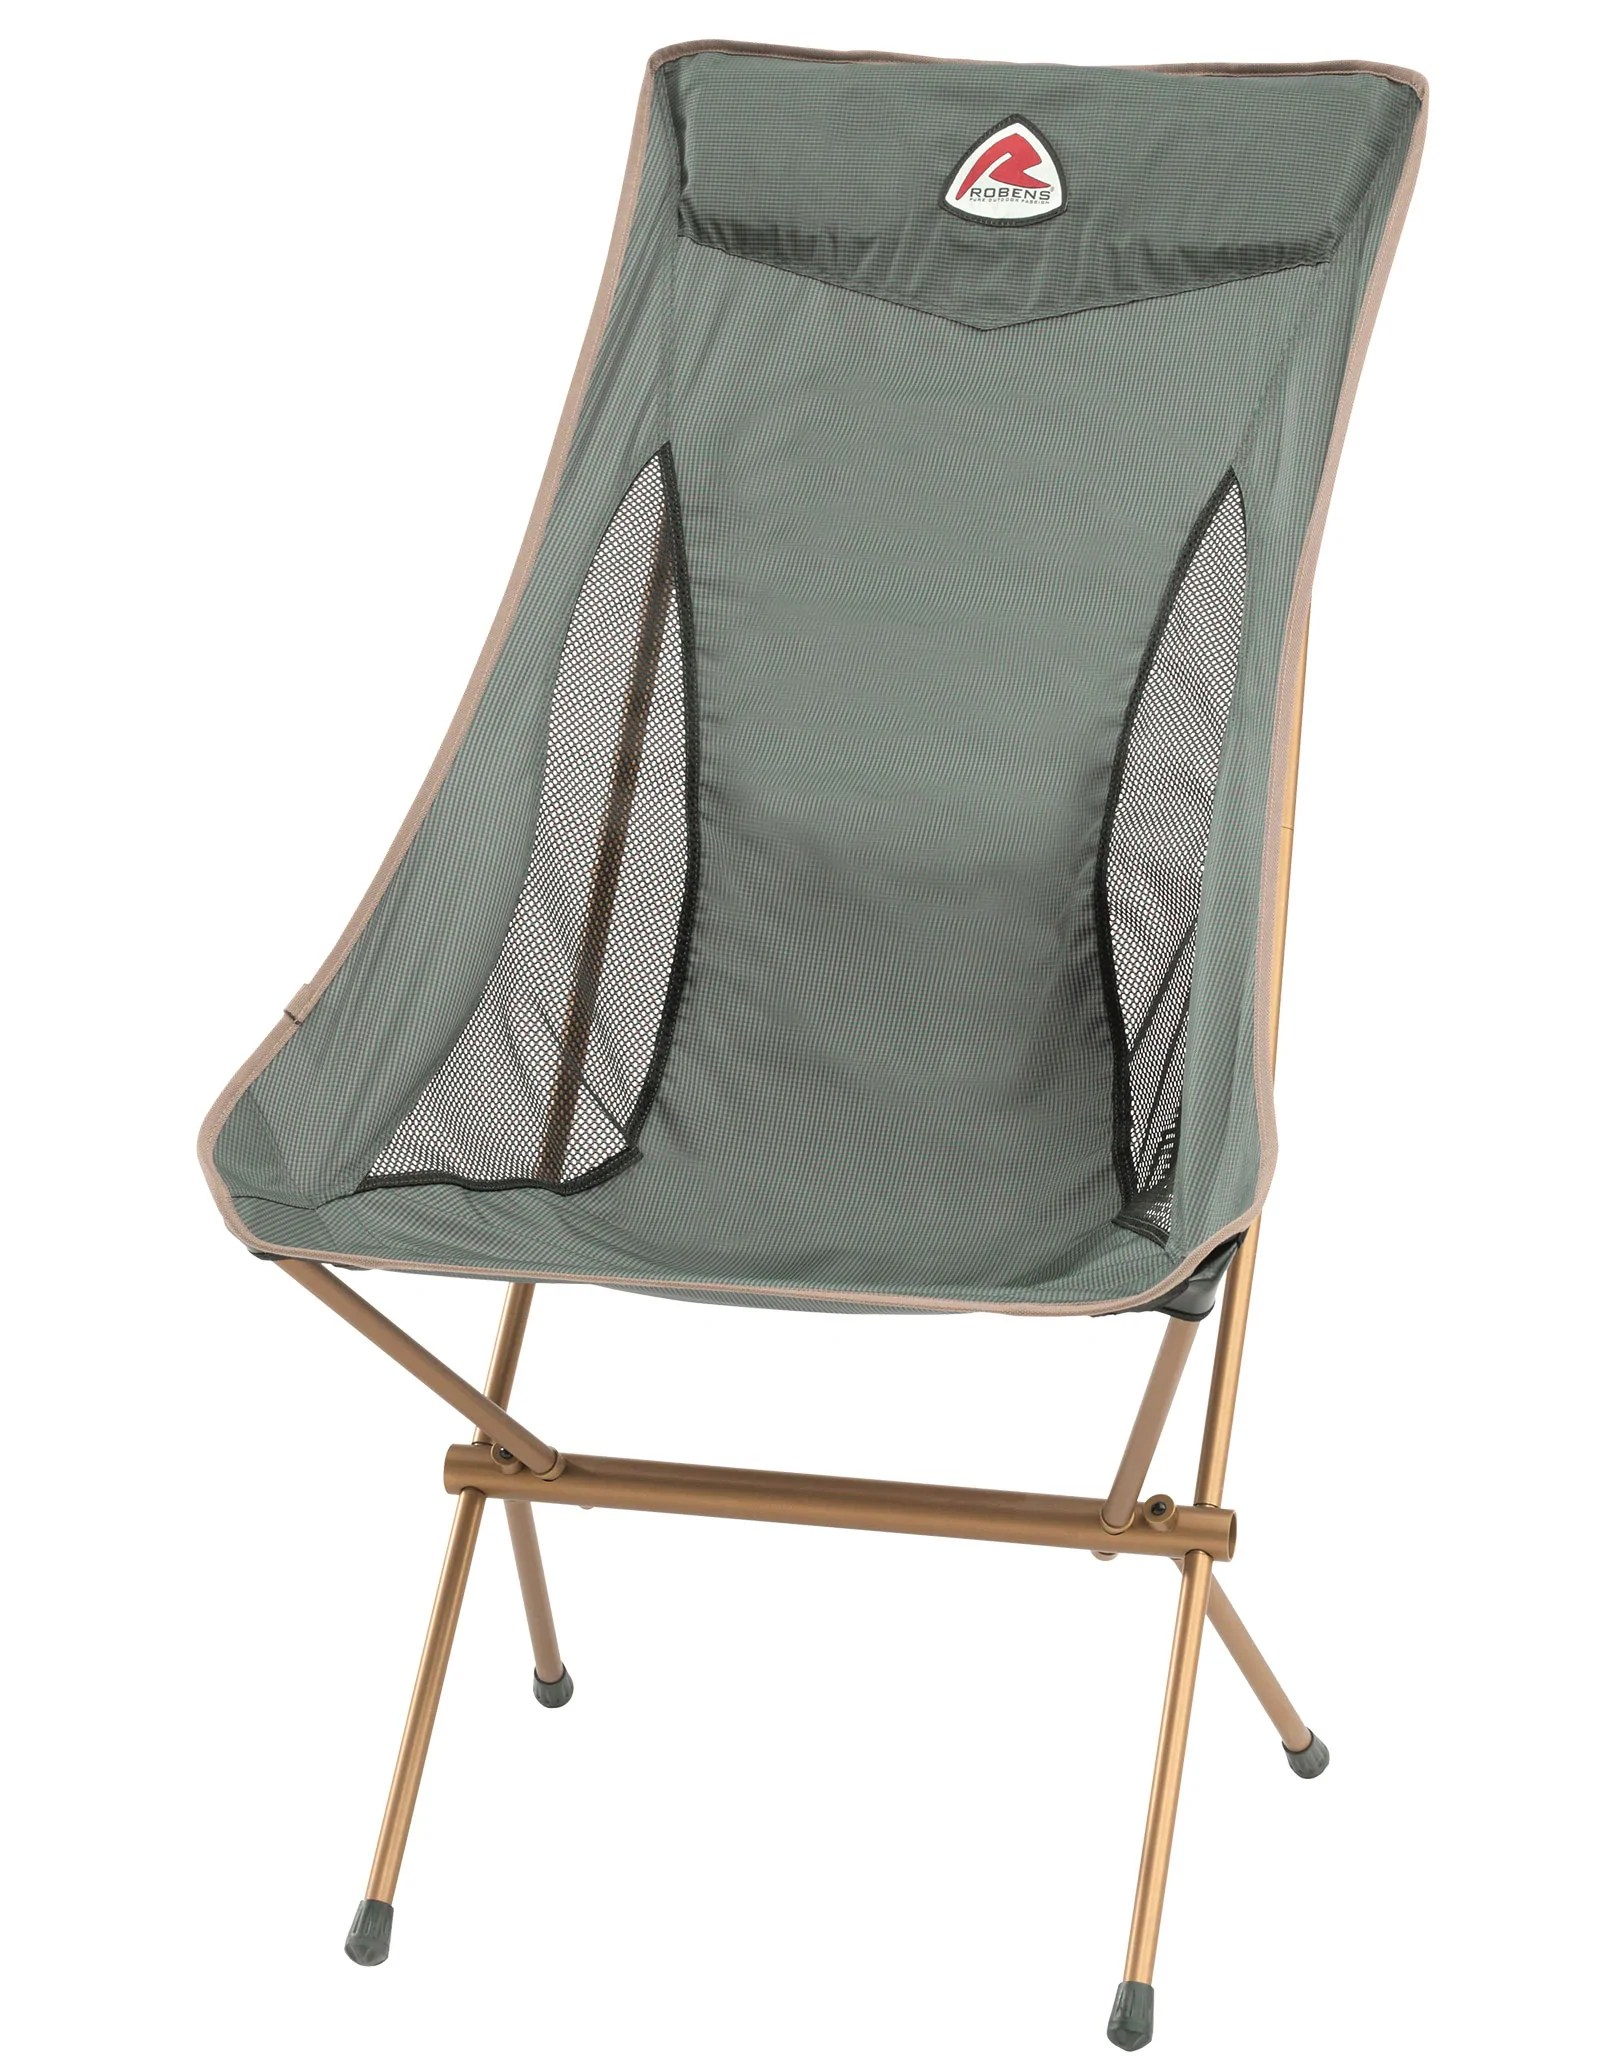 Small Camping Chair Observer Camping Chair Granite Grey